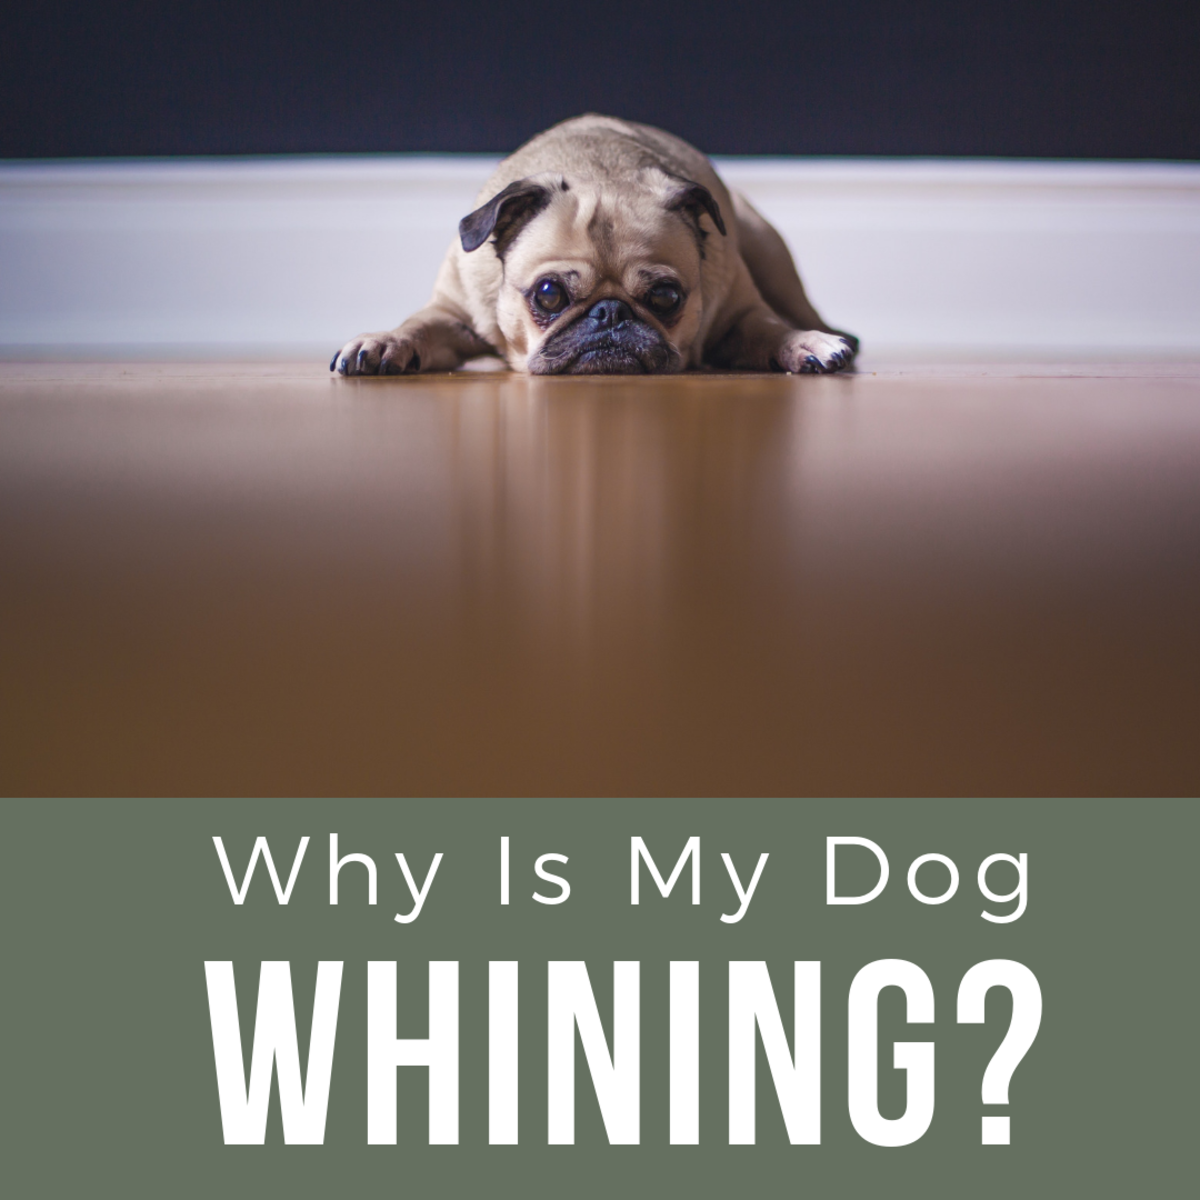 How Do You Get a Dog to Stop Whining?